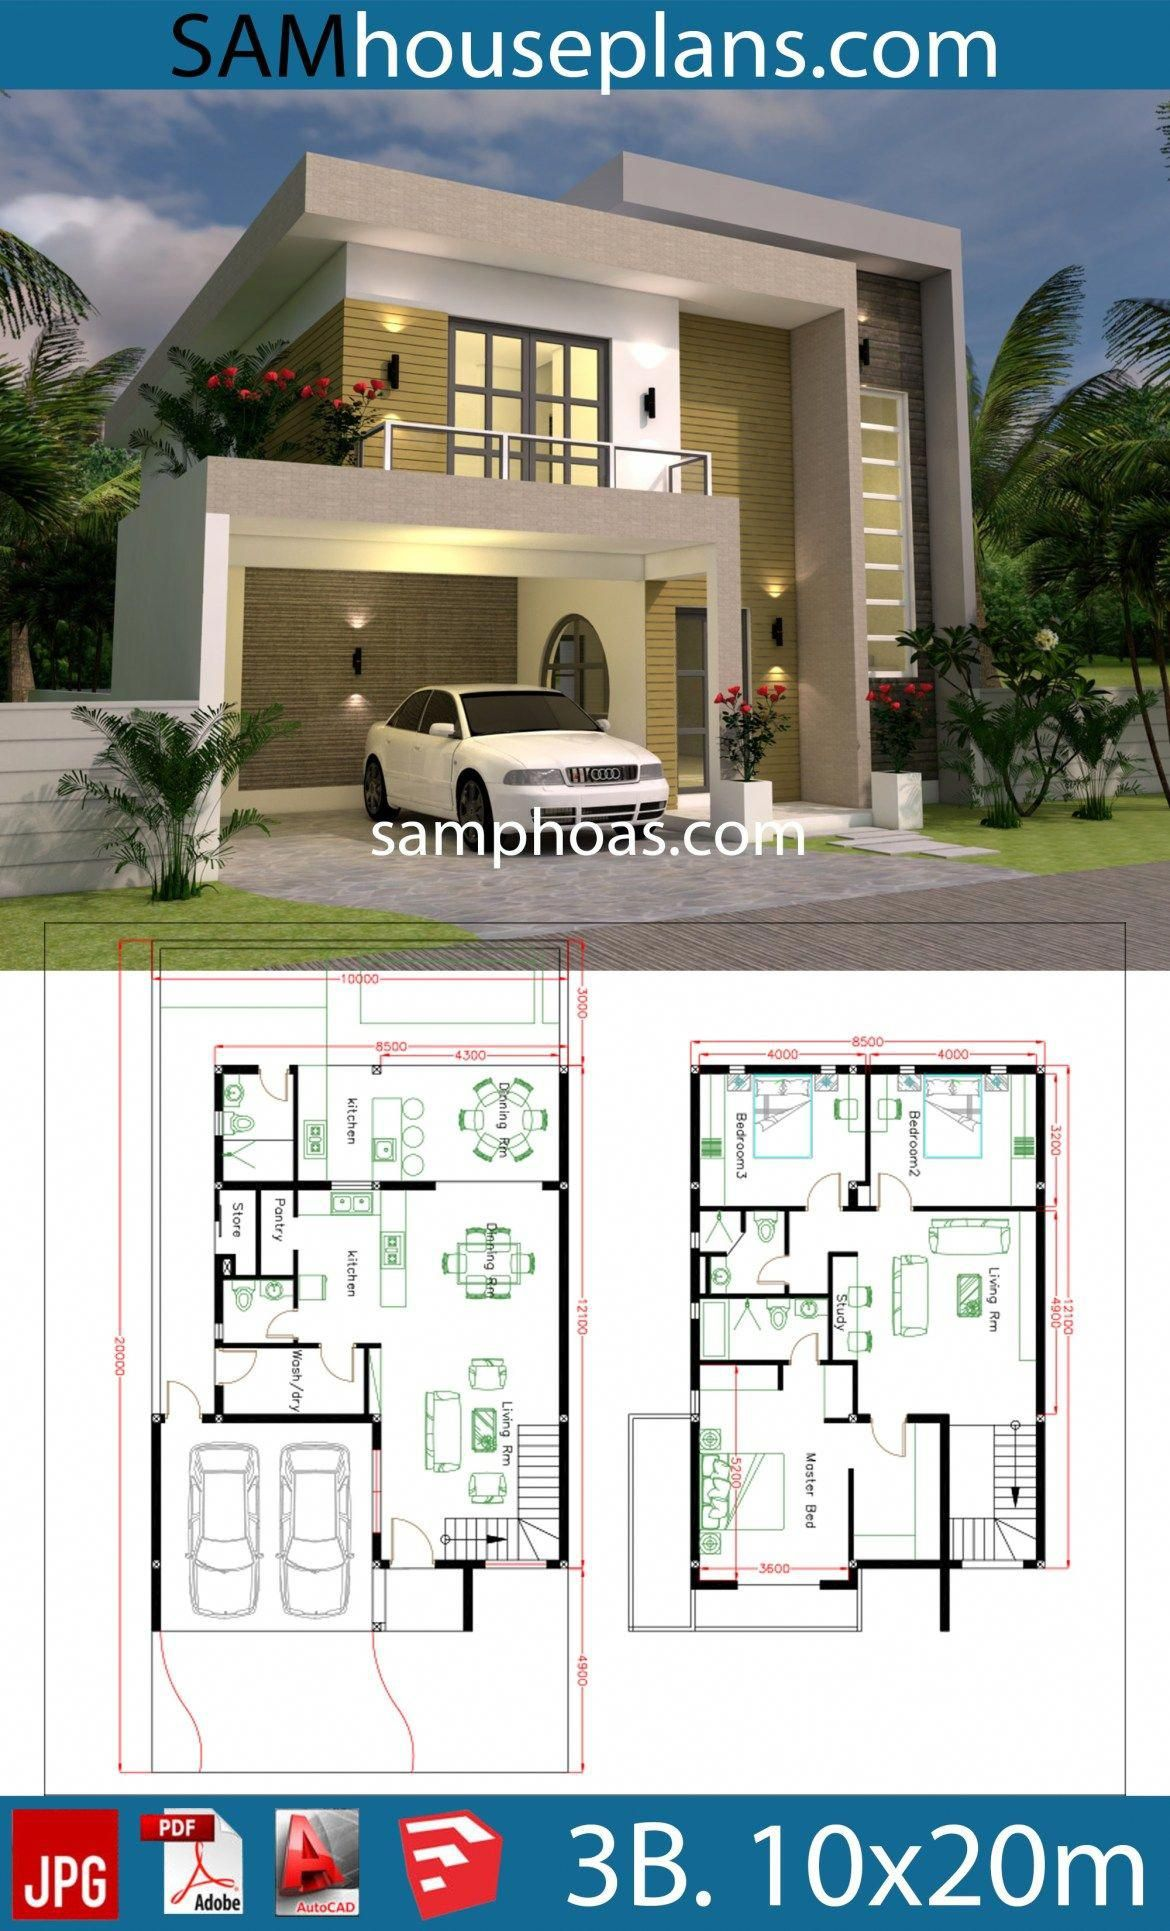 3d House Design Plans With 3 Bedrooms Plot 10x20m Samphoas Plansearch Luxuryhomeinterior Modern Style House Plans House Front Design 3d House Plans